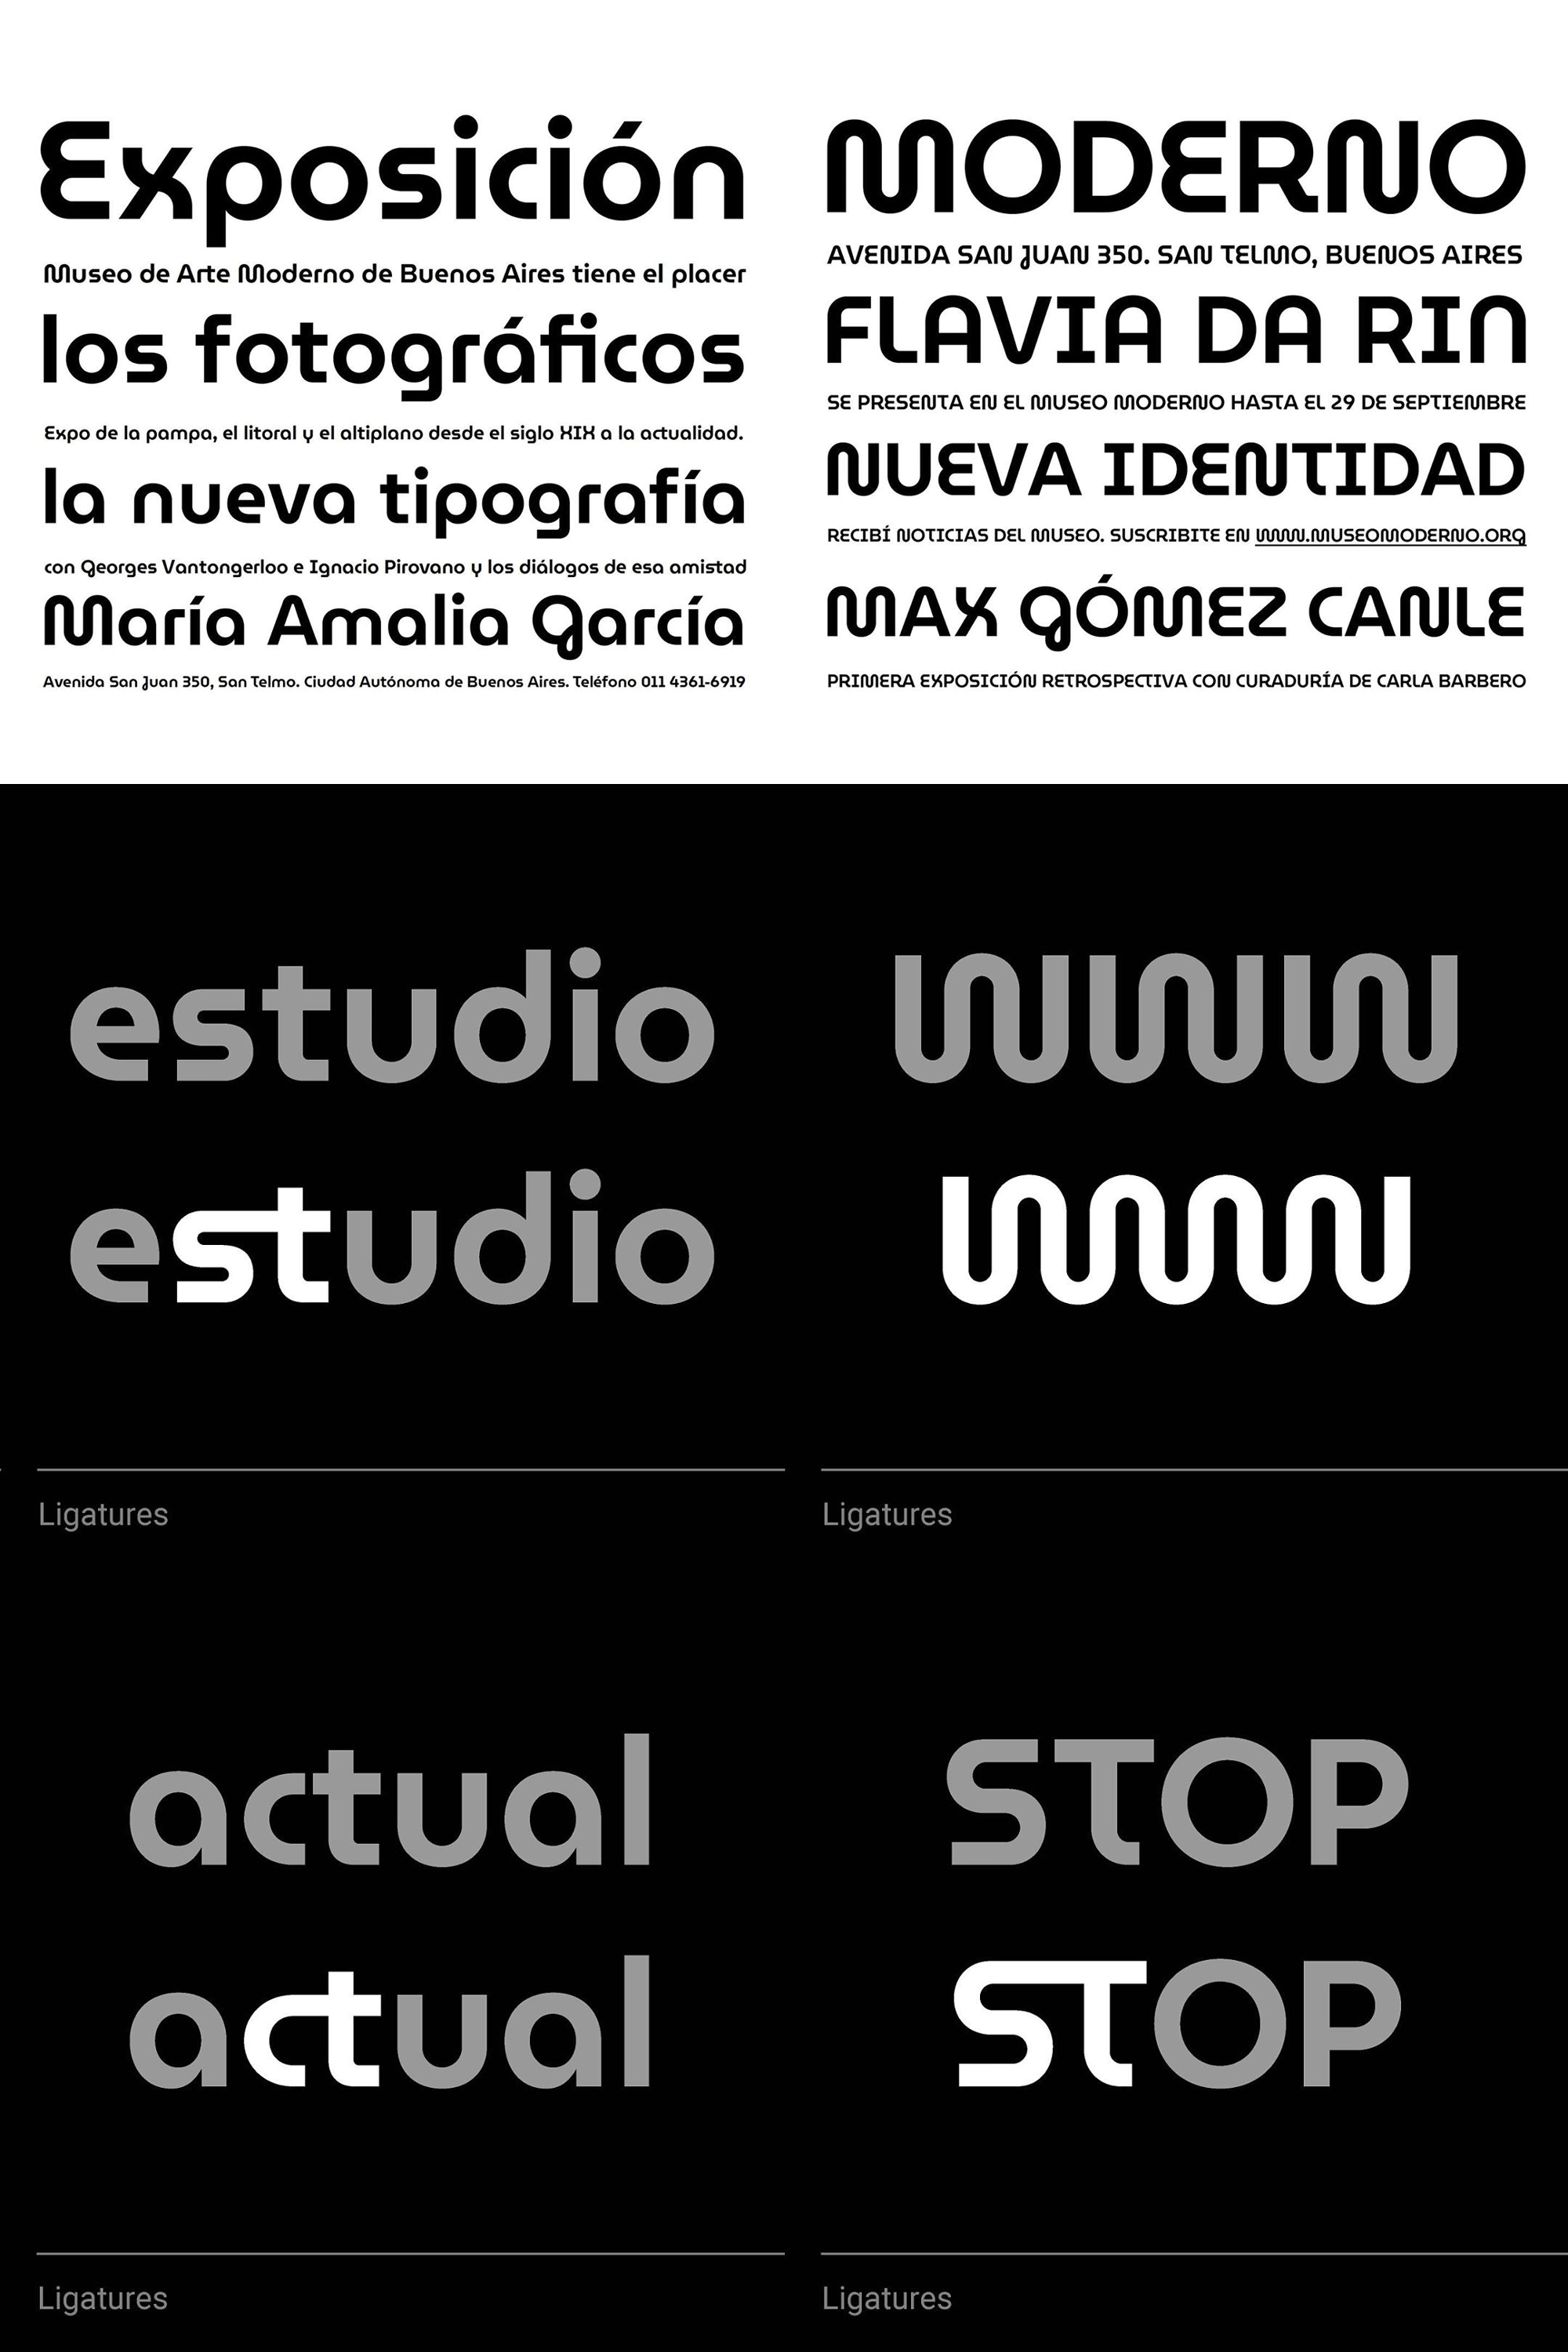 New Logo and Identity for Museo Moderno by Estudio Garricho and Omnibus-Type